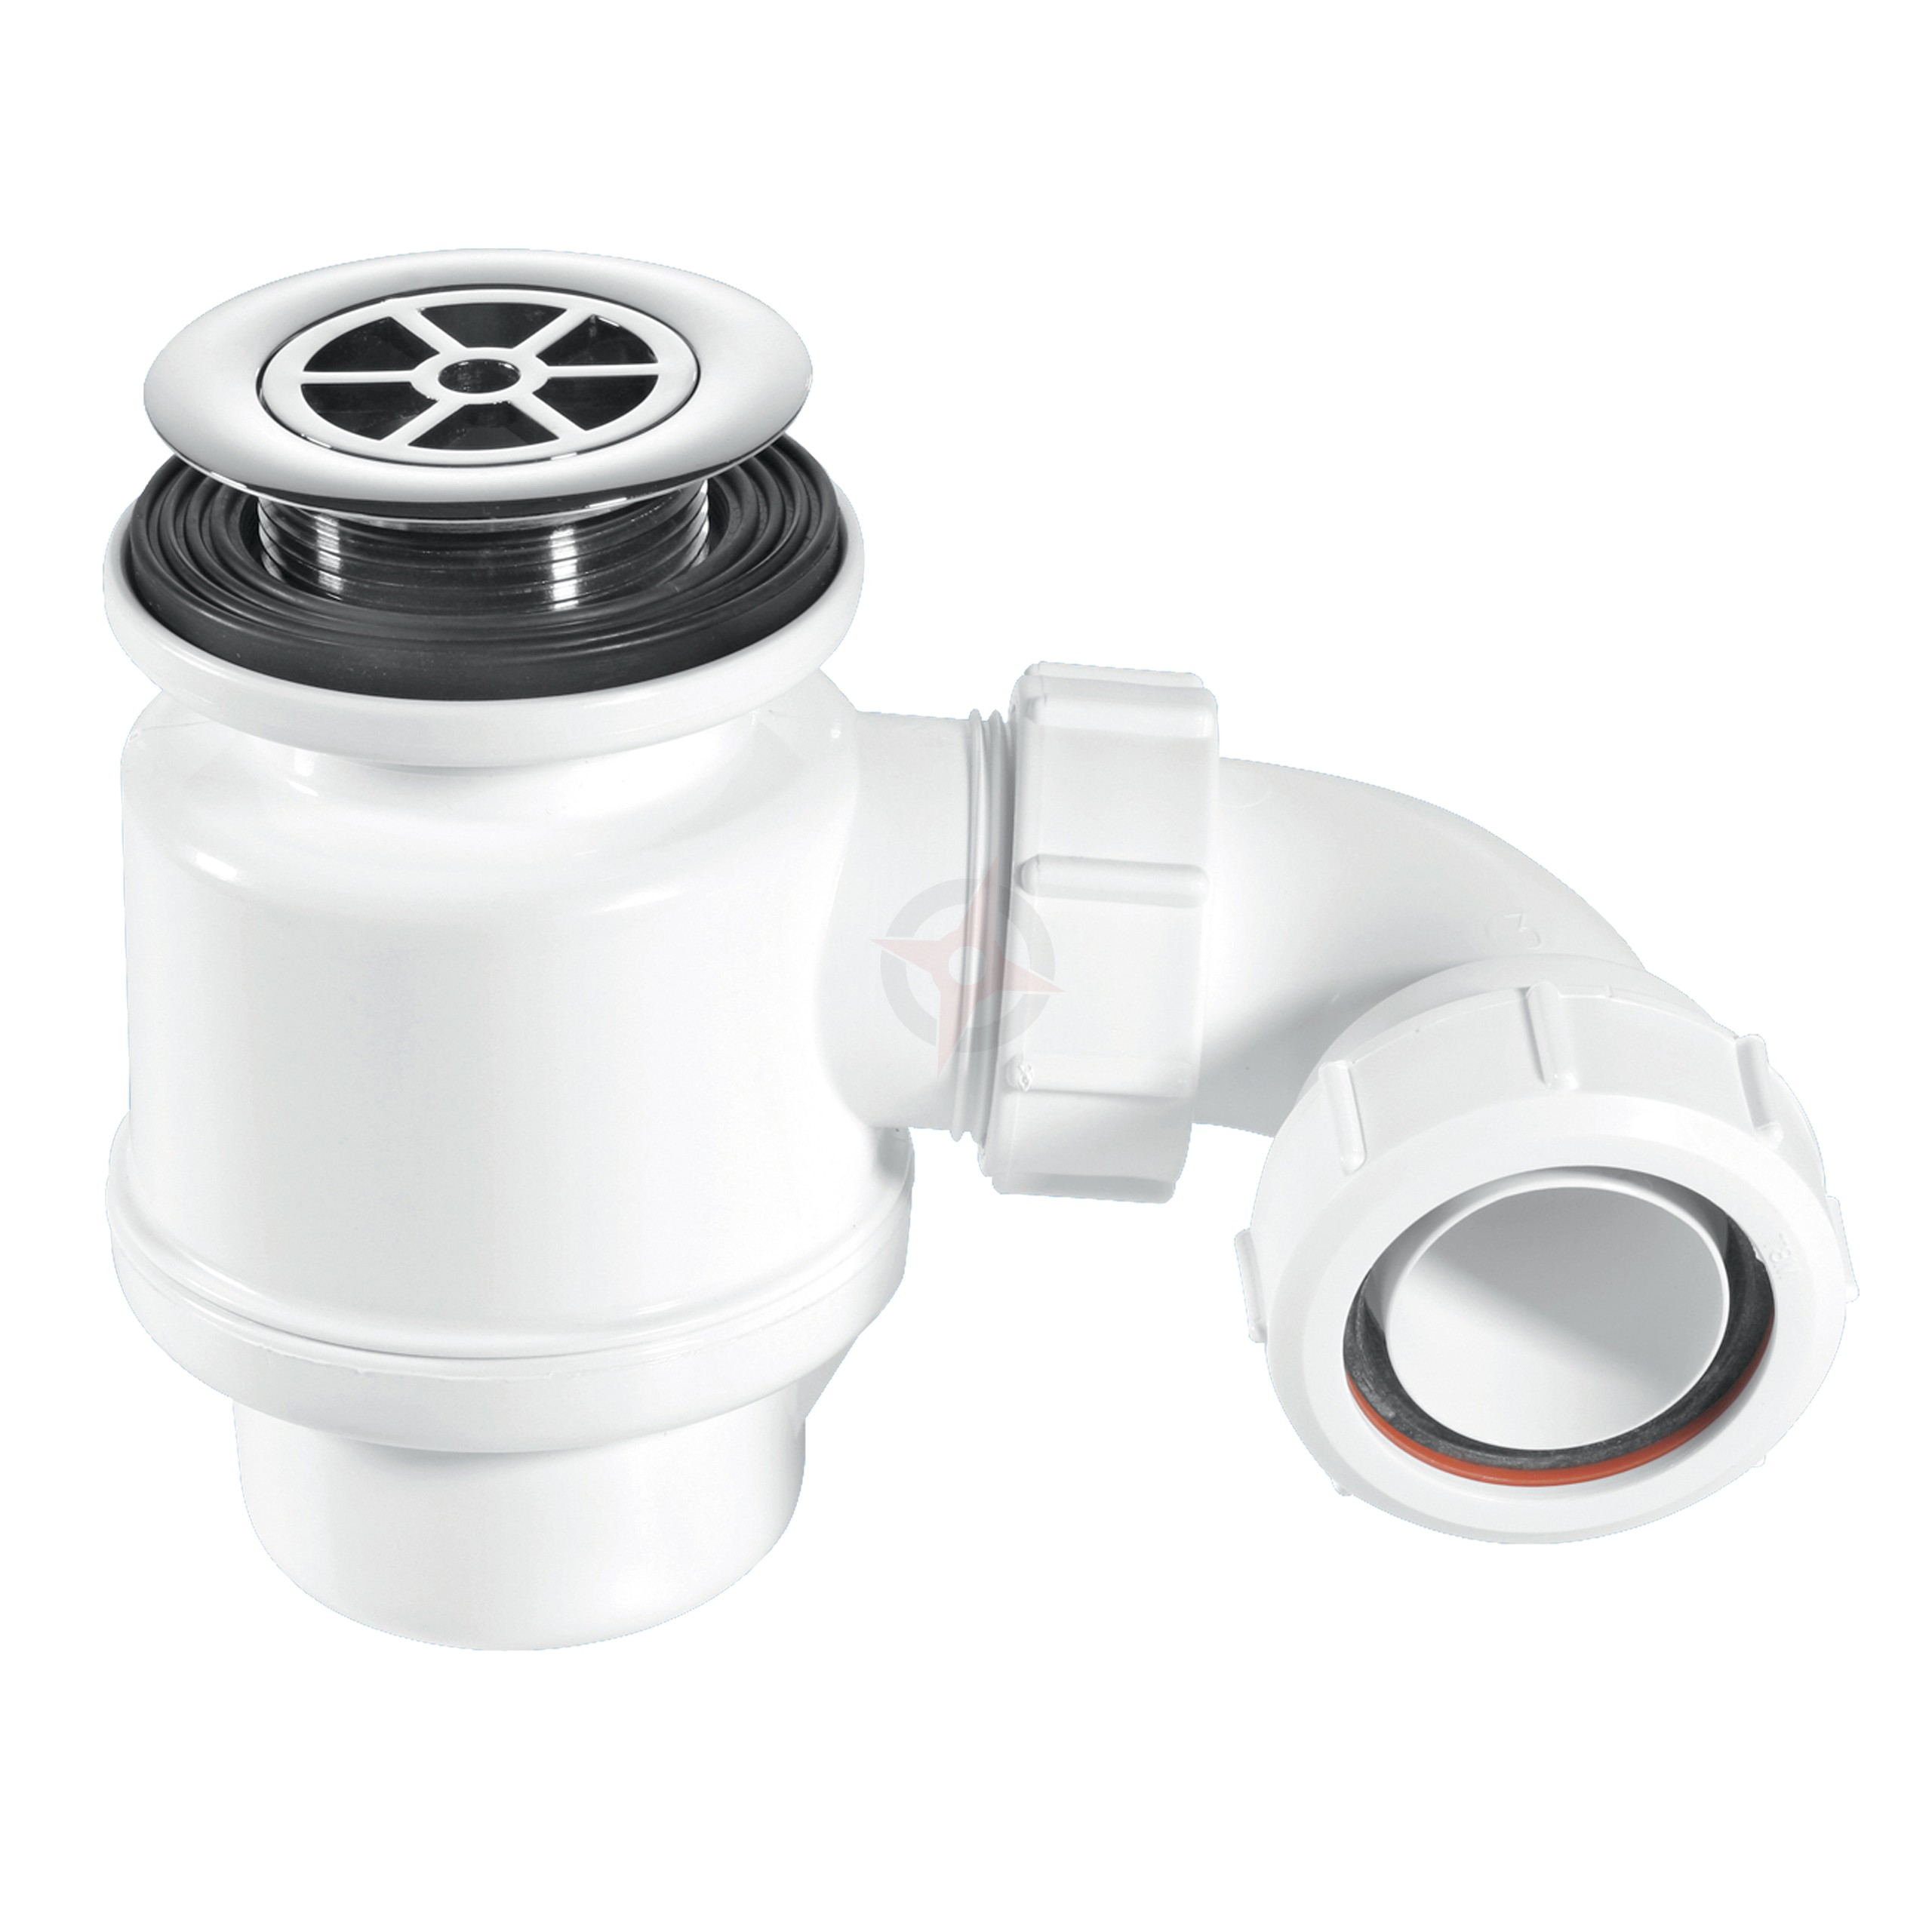 McAlpine 40mm x 50mm Seal White Shower Trap with 70mm Chrome Plastic Flange STW4-R